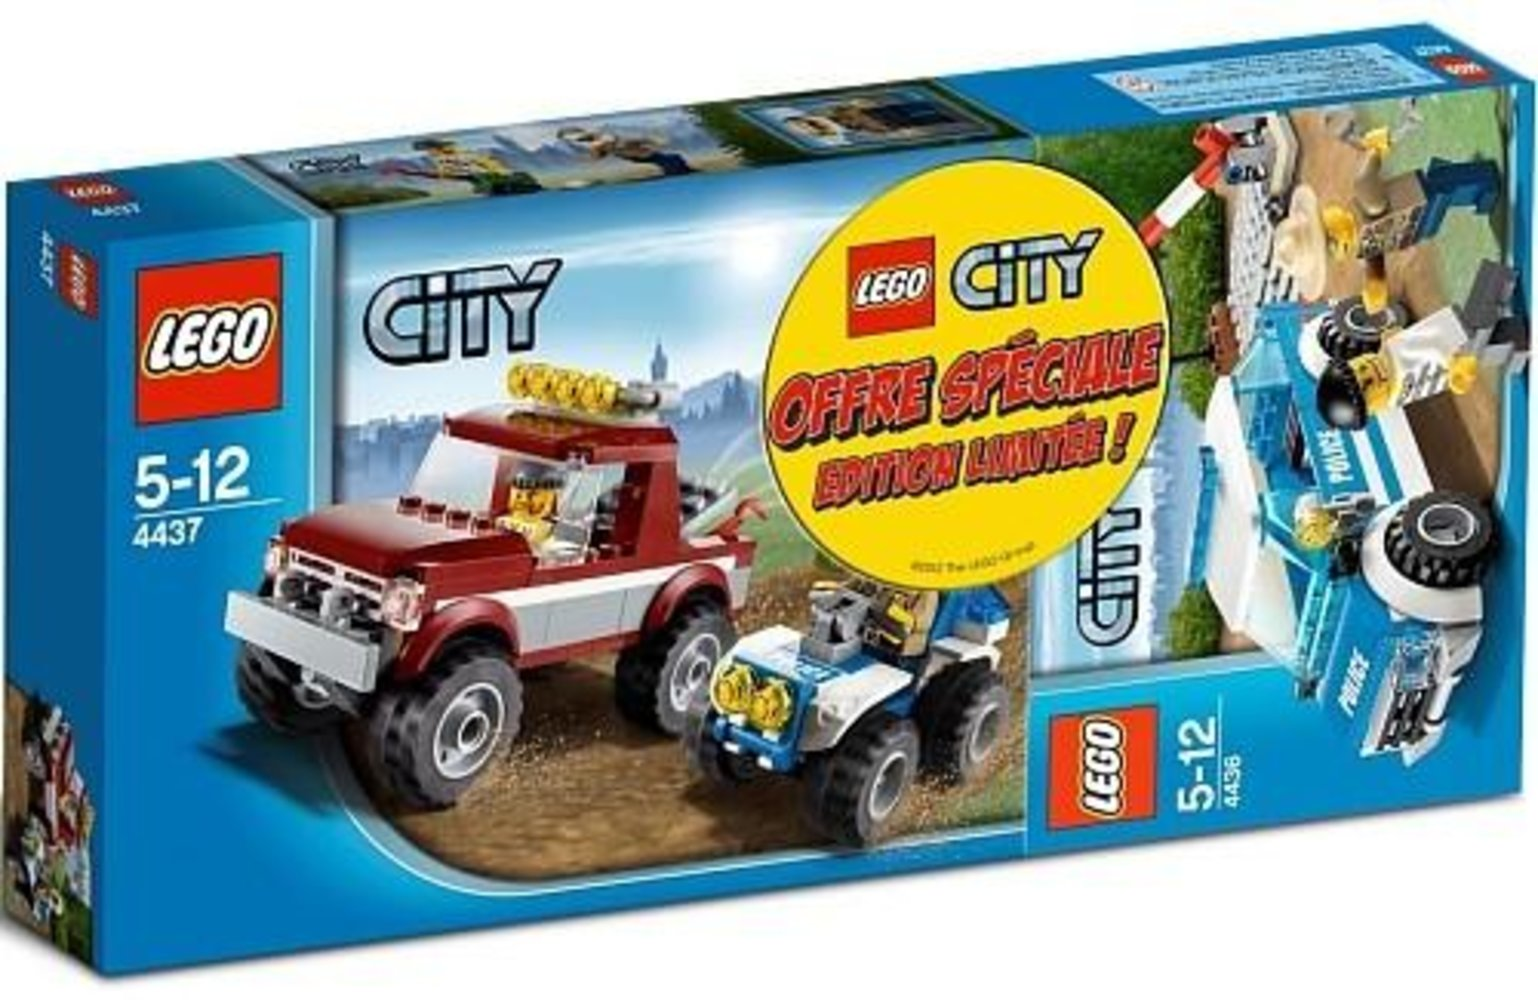 City Super Pack 2 in 1 (4436, 4437)